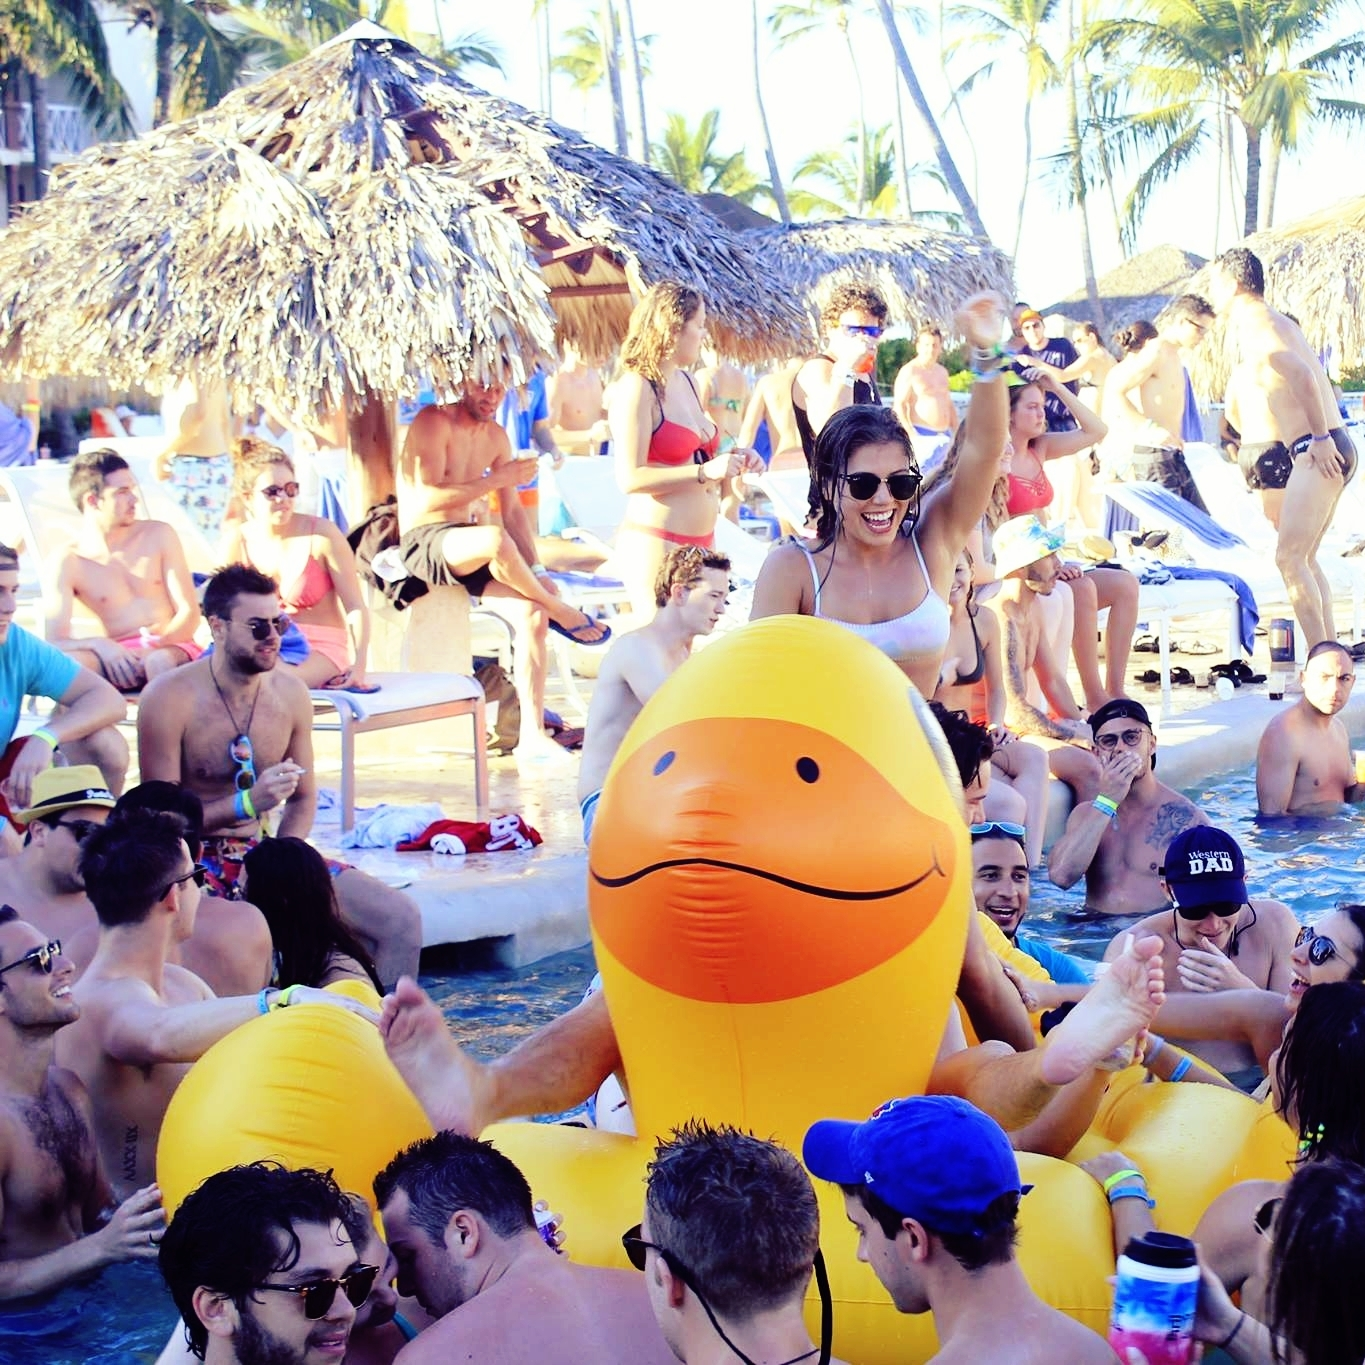 spring-break-pool-party-rubber-duck-college